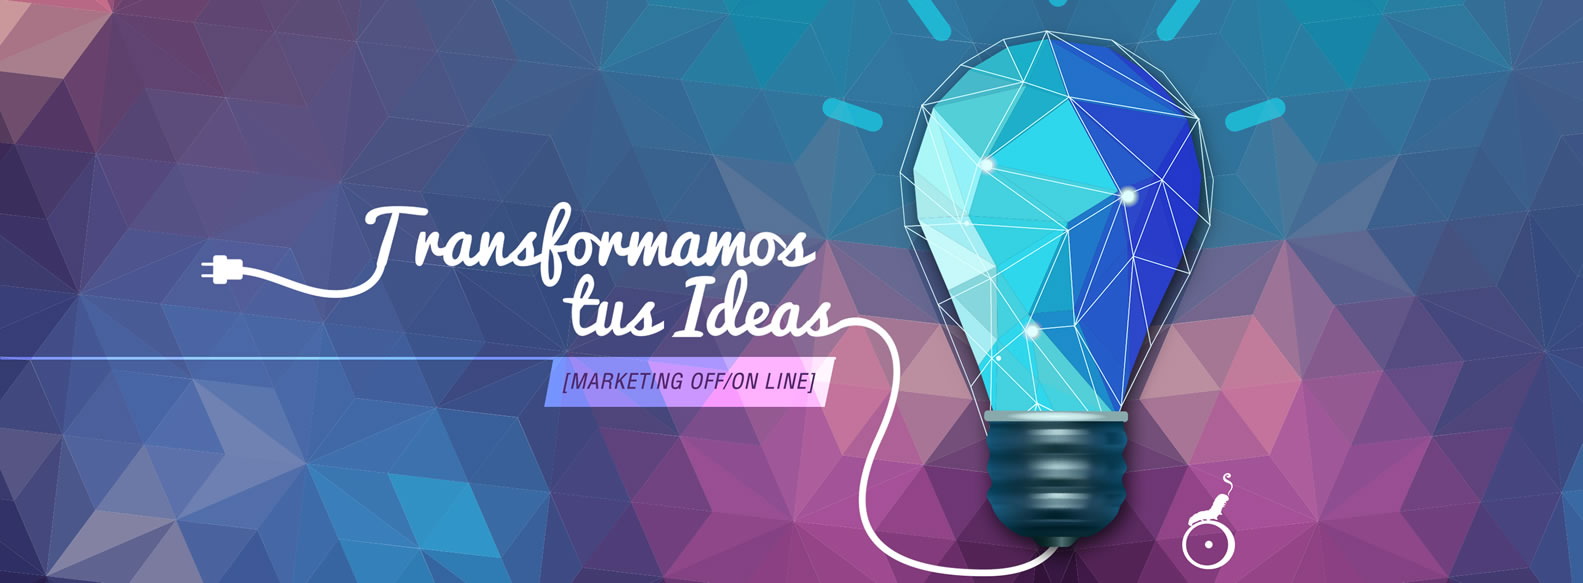 marketing-off-on-line